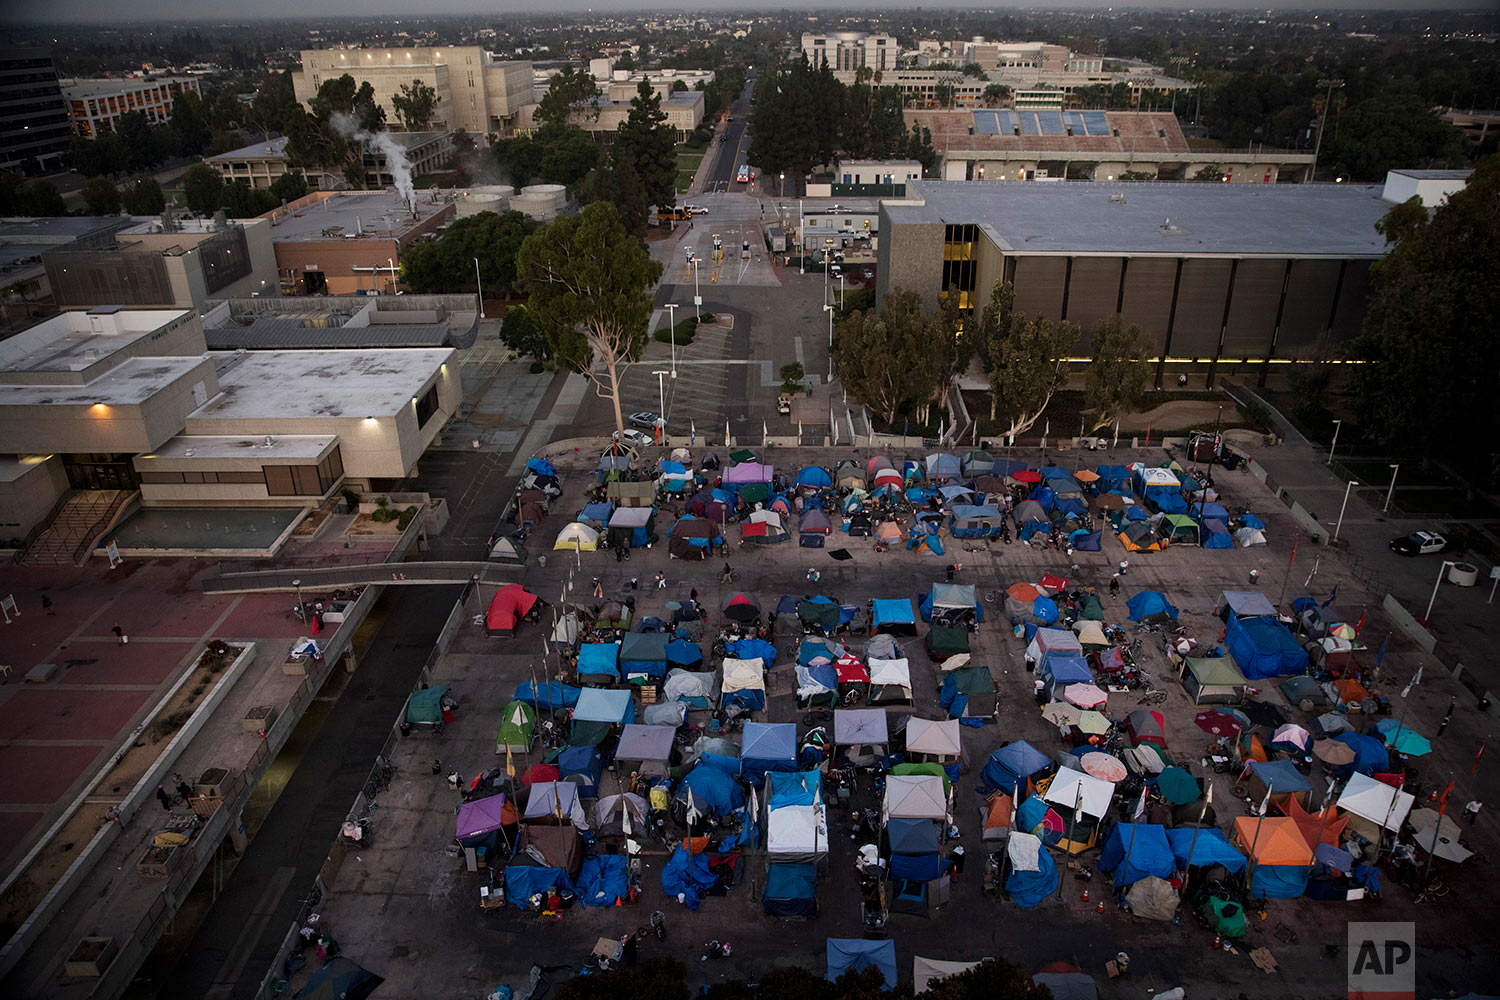 "A large homeless encampment is formed on the ""Plaza of the Flags"" elevated park at the Santa Ana Civic Center complex Wednesday, Oct. 11, 2017, in Santa Ana, Calif. California declared a statewide emergency due to a hepatitis A outbreak linked to homeless encampments. Comparisons are being made to conditions more commonly seen in Third World countries. (AP Photo/Jae C. Hong)"